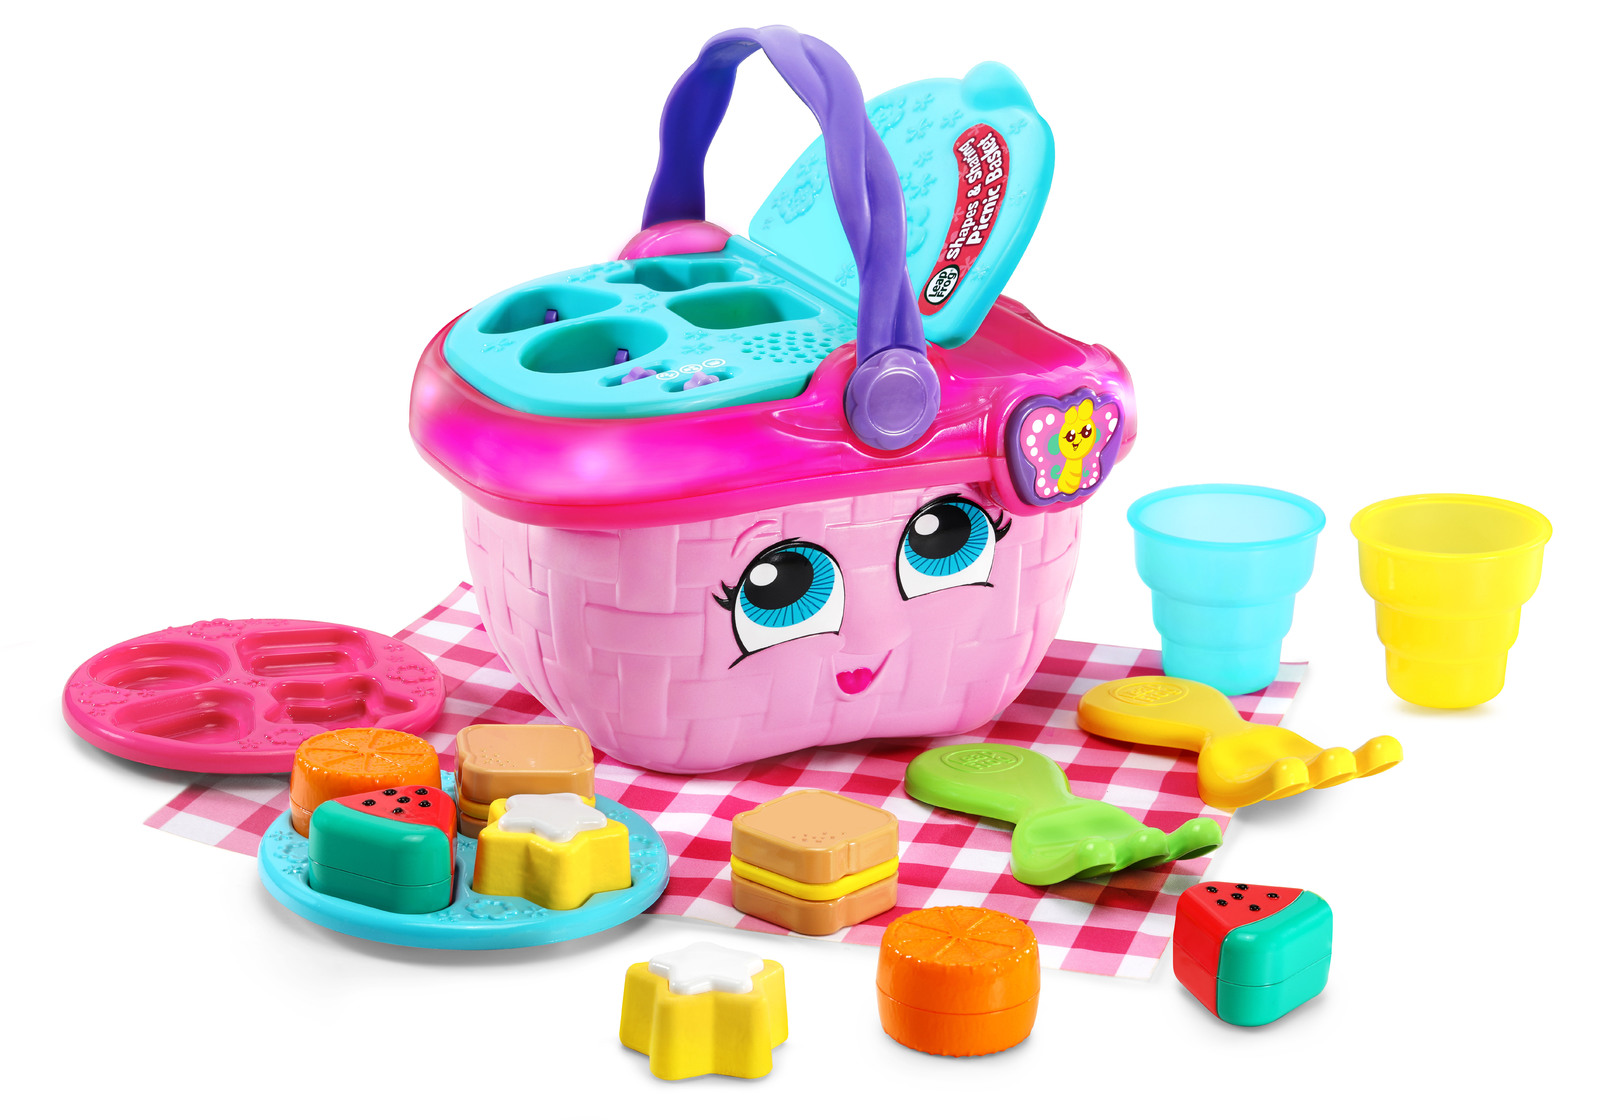 Leapfrog: Shapes & Sharing - Picnic Basket image